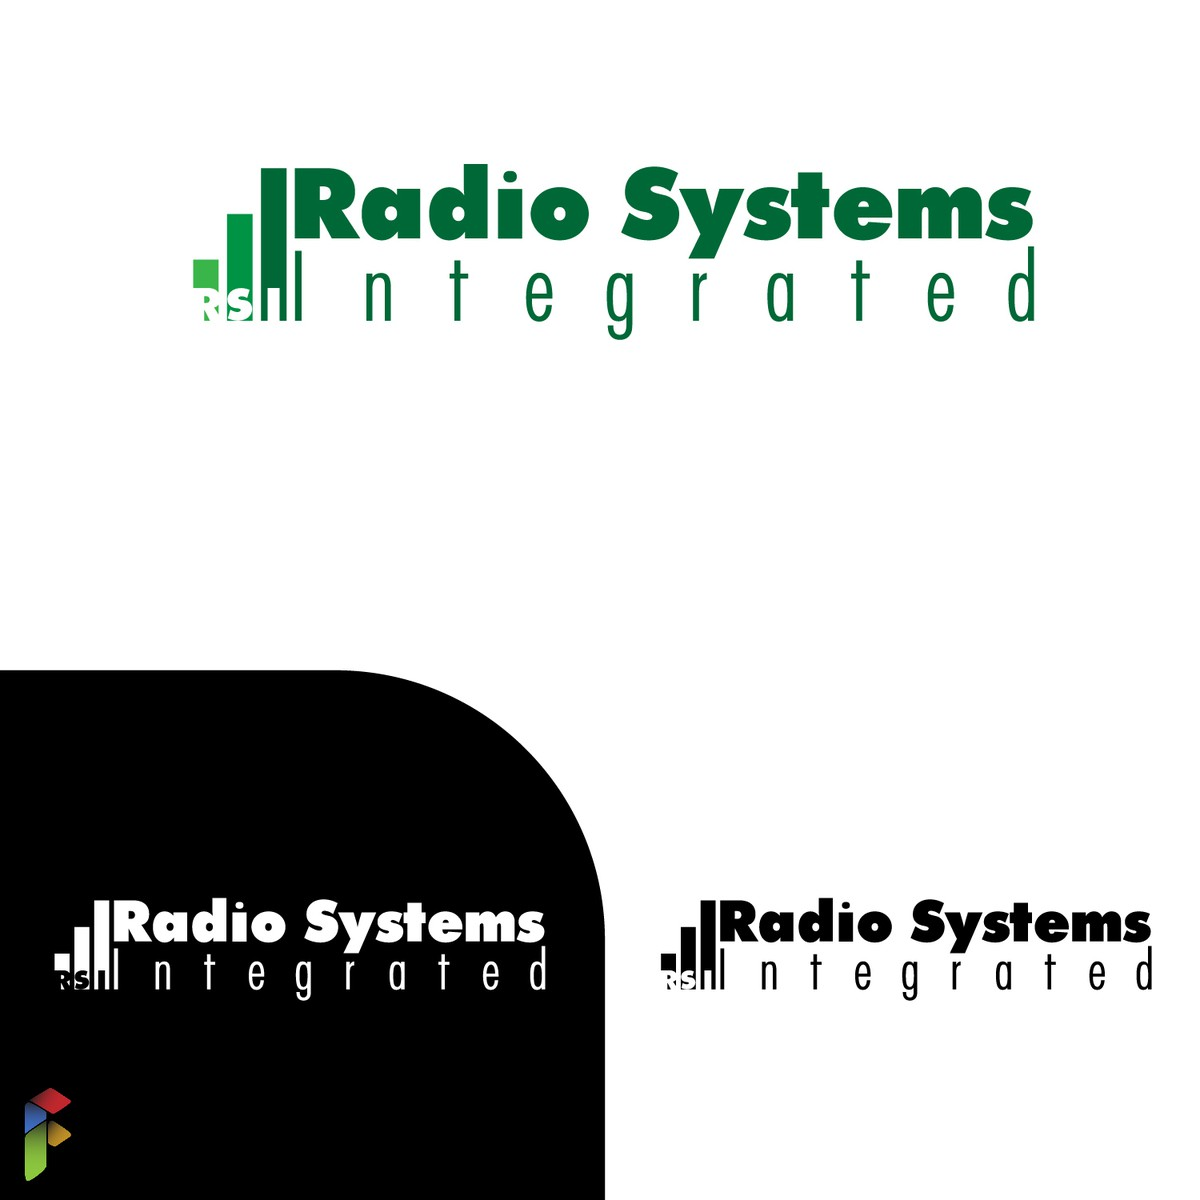 radio_systems_Logo_01_2-100